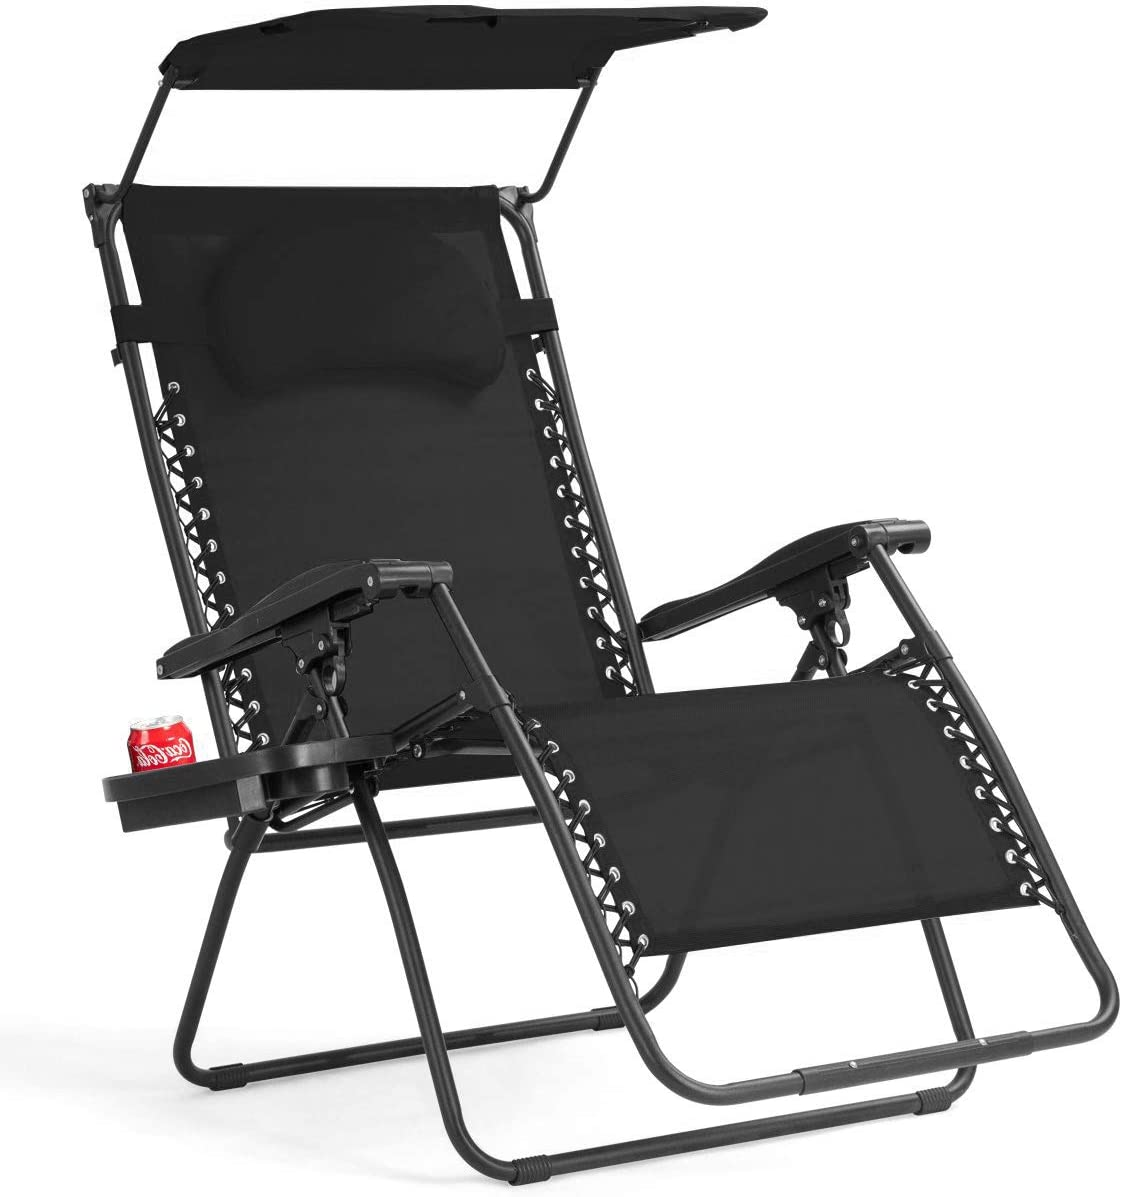 Polar Aurora Zero Gravity Chairs Recliner Lounge Patio Chairs Folding Cup Holder 2 Pack Black